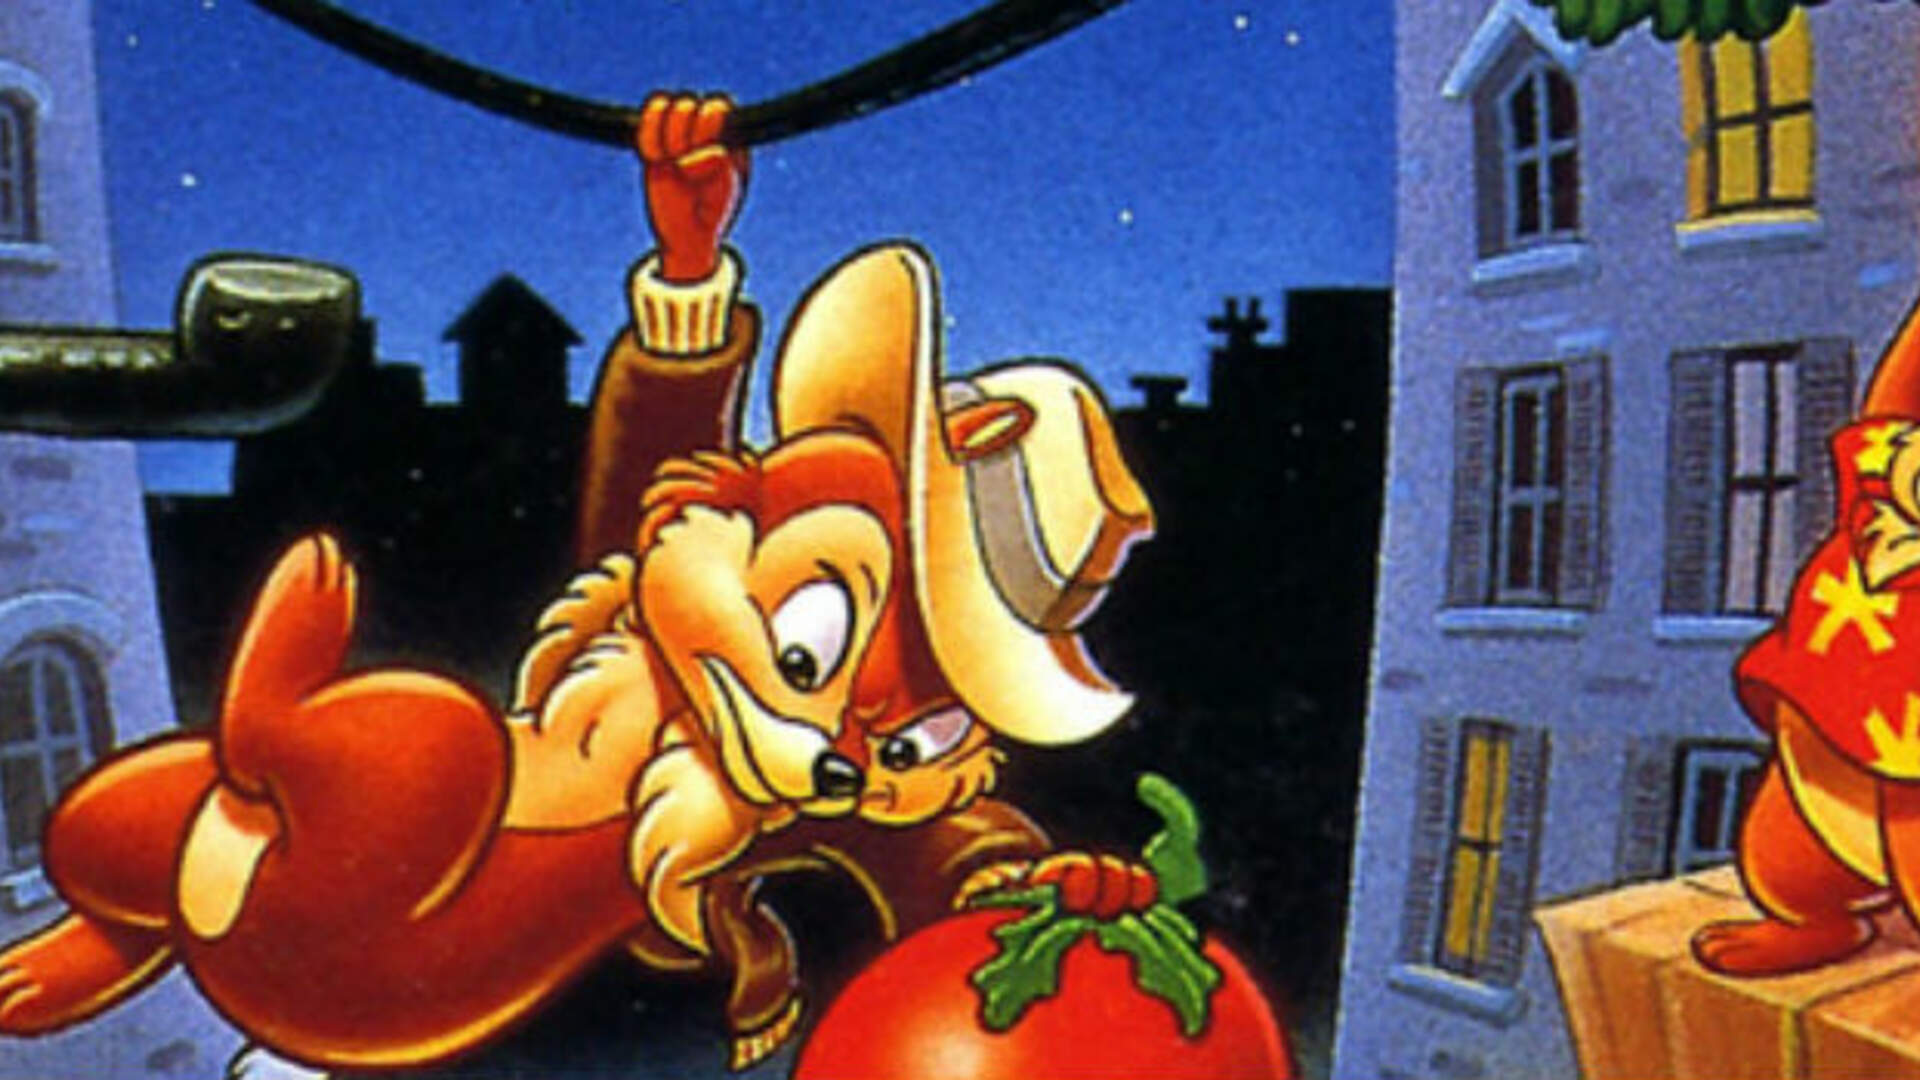 Let's Play, '90s Style: YouTuber Uploads Footage of Himself Playing Chip 'N Dale's Rescue Rangers for NES